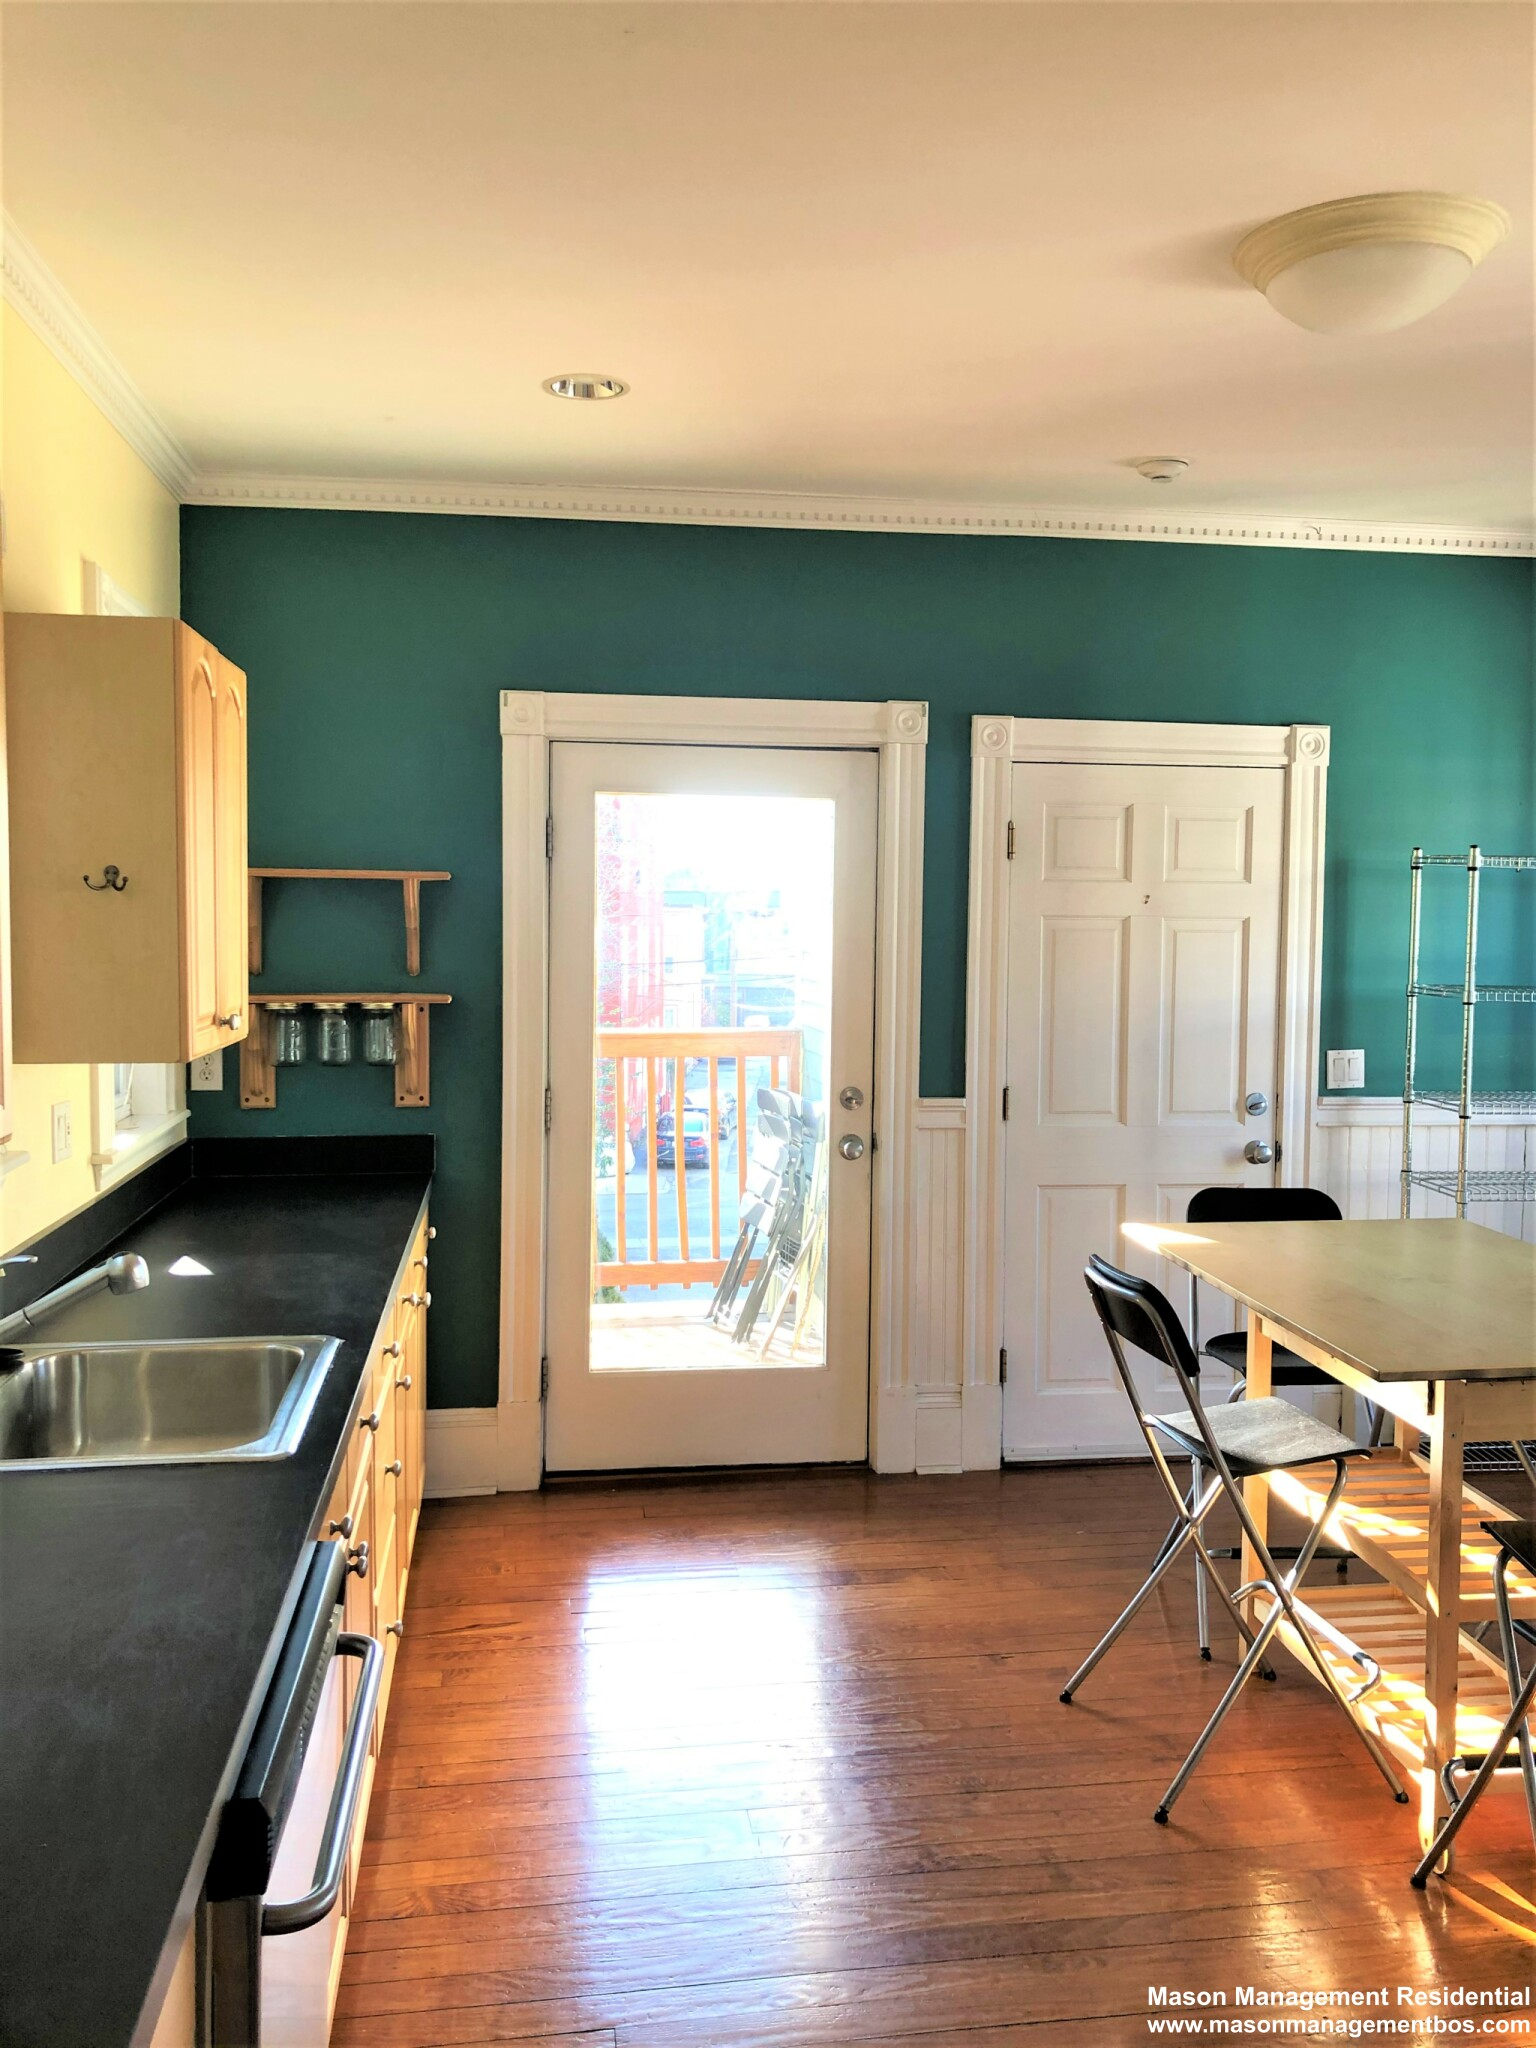 2 Beds, 1 Bath apartment in Cambridge for $2,850